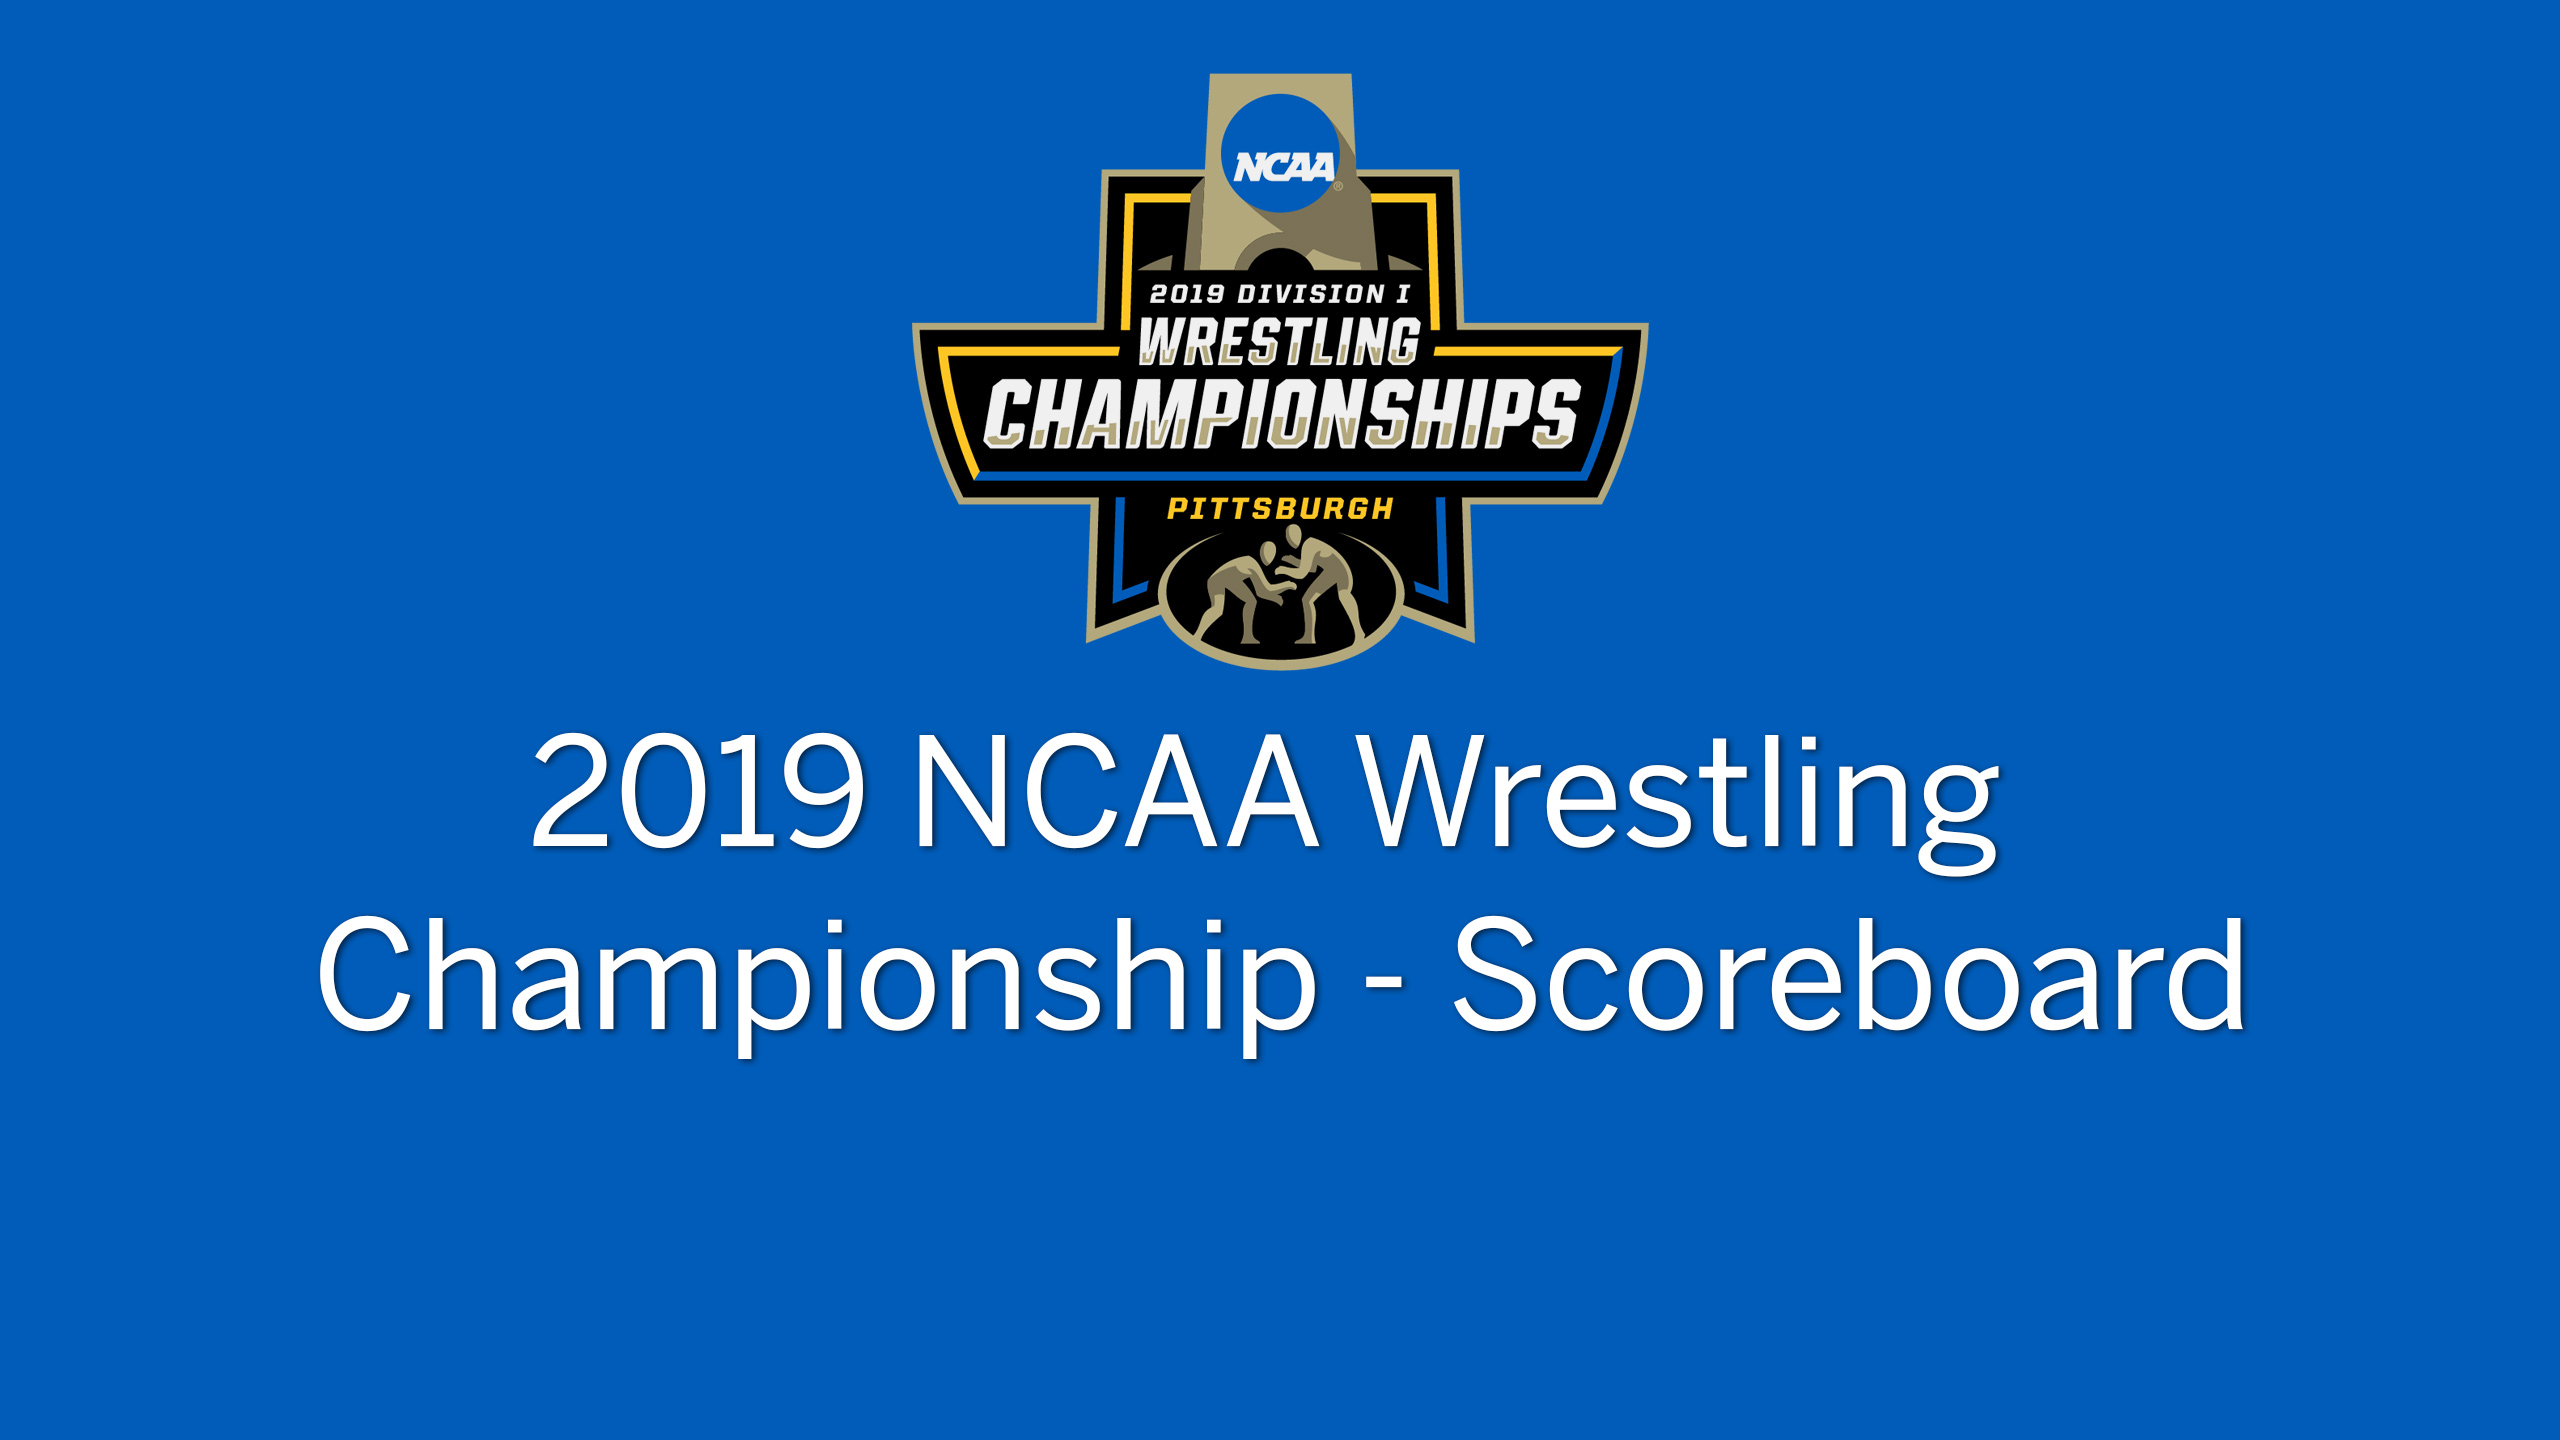 NCAA Wrestling Championship (Scoreboard - Medal Round)